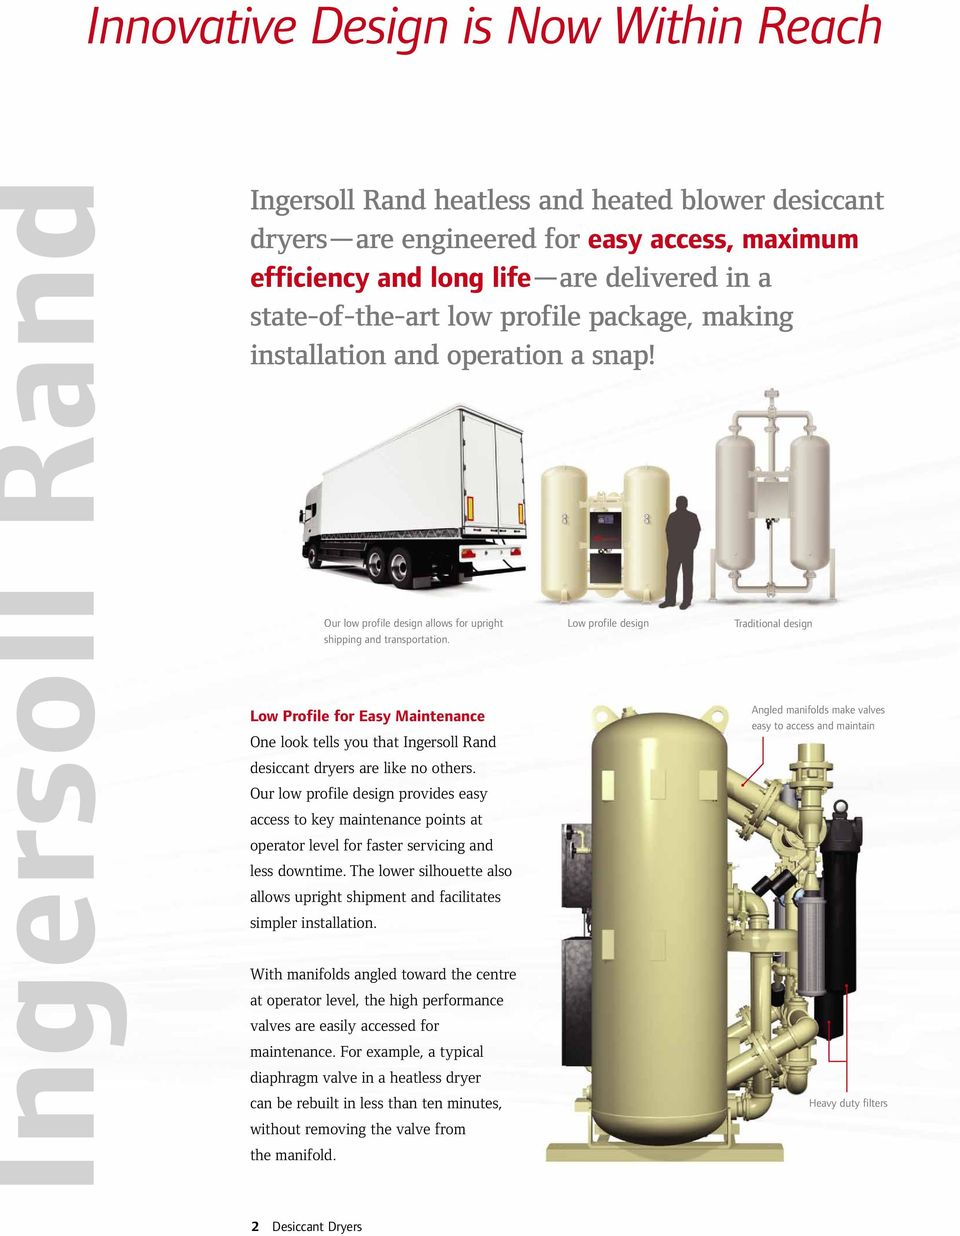 Low Profile for Easy Maintenance One look tells you that Ingersoll Rand desiccant dryers are like no others.